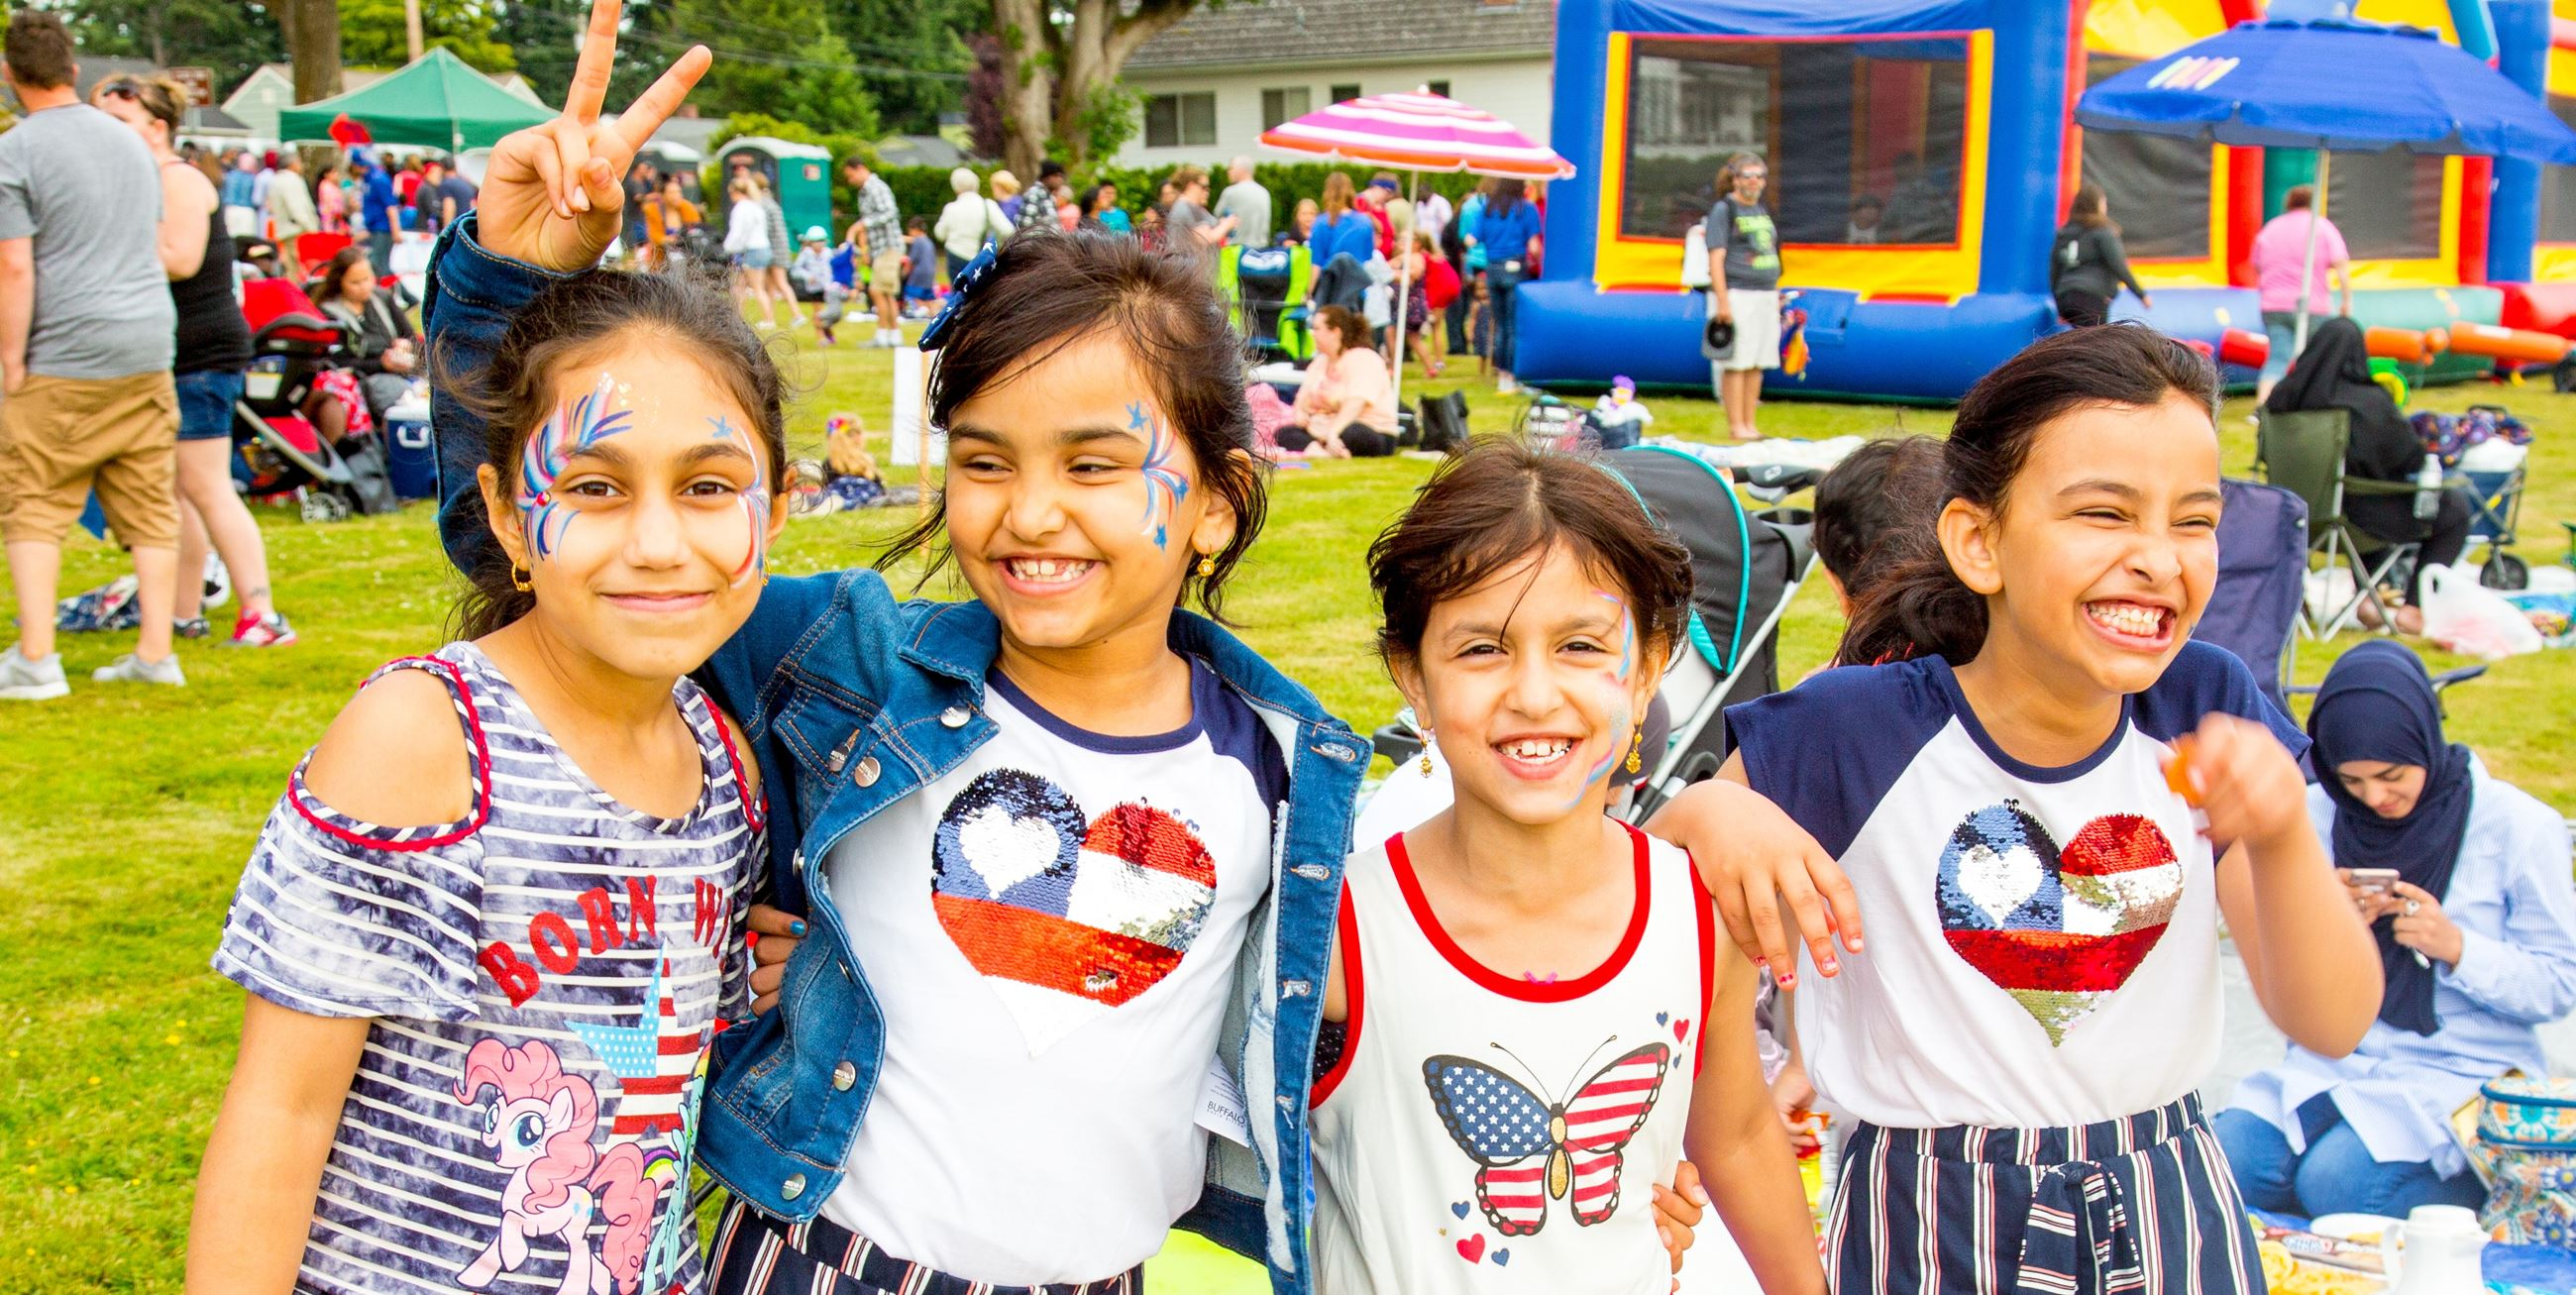 Four school-age girls standing together smiling in front of a bouncy house